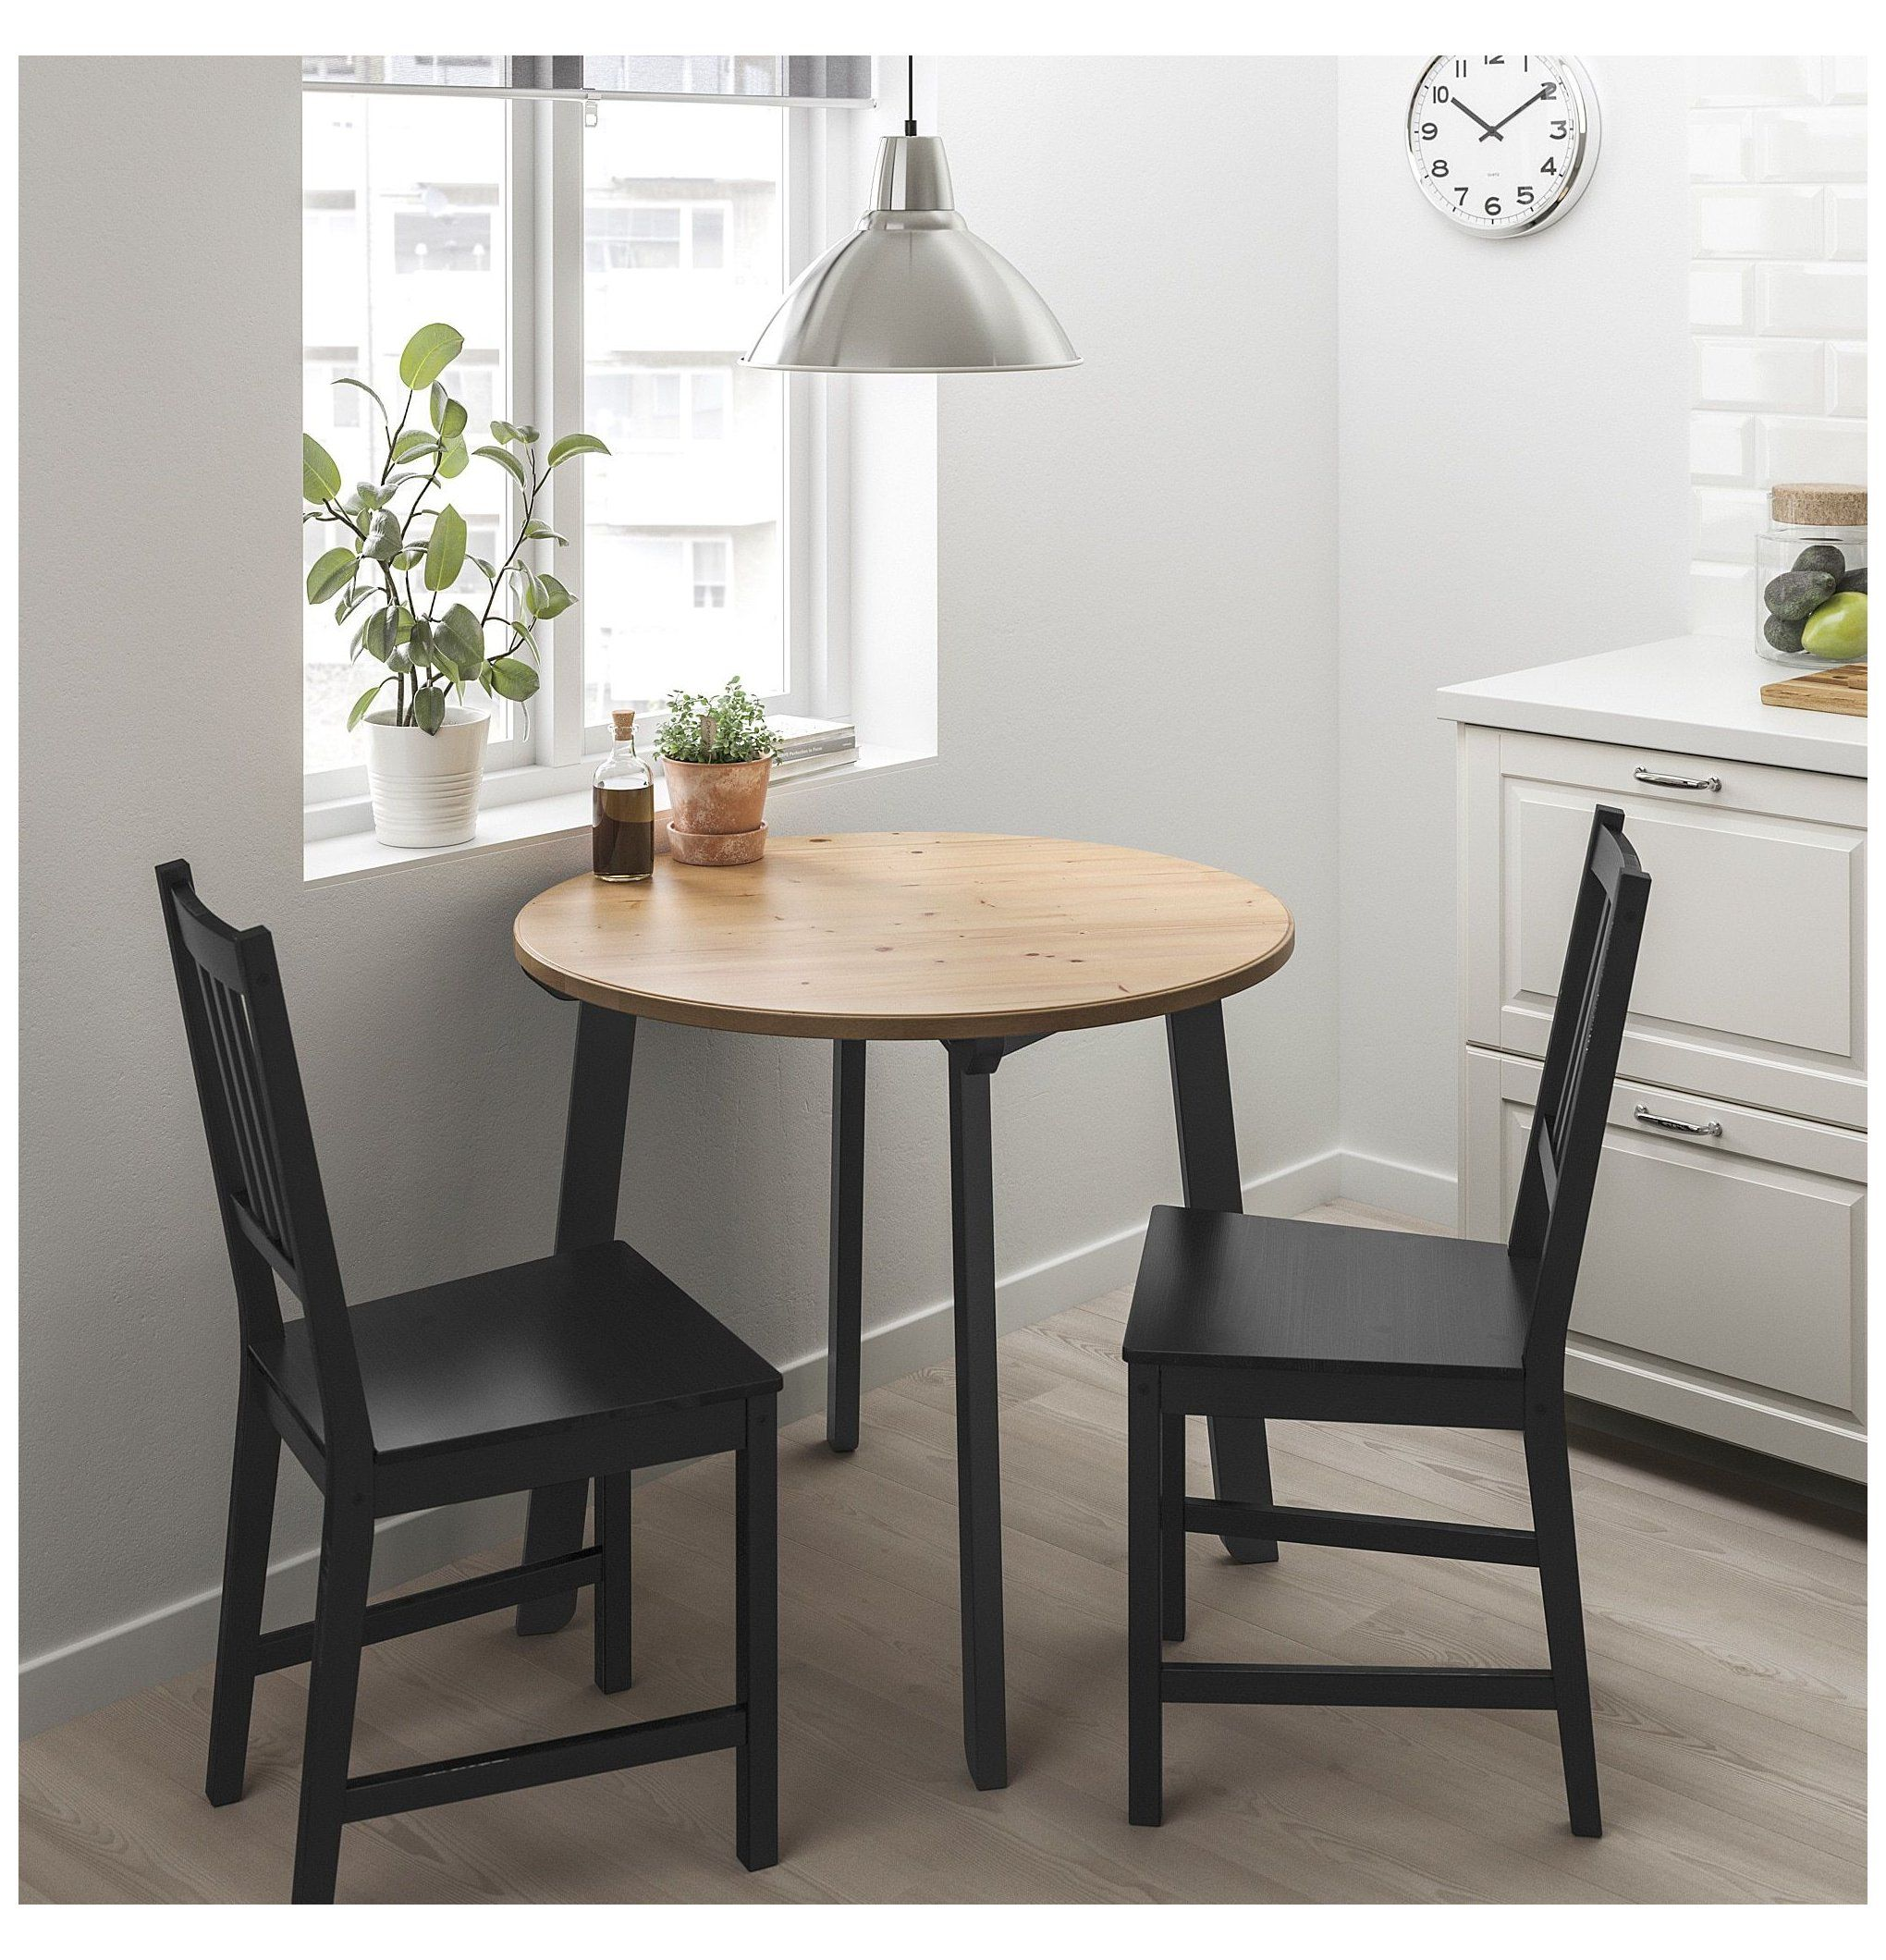 Ikea Gamlared Stefan Table And 2 Chairs Light Antique Stain Brown Black Ikea Small Dining Ta Dining Room Small Small Dining Table Small Kitchen Tables